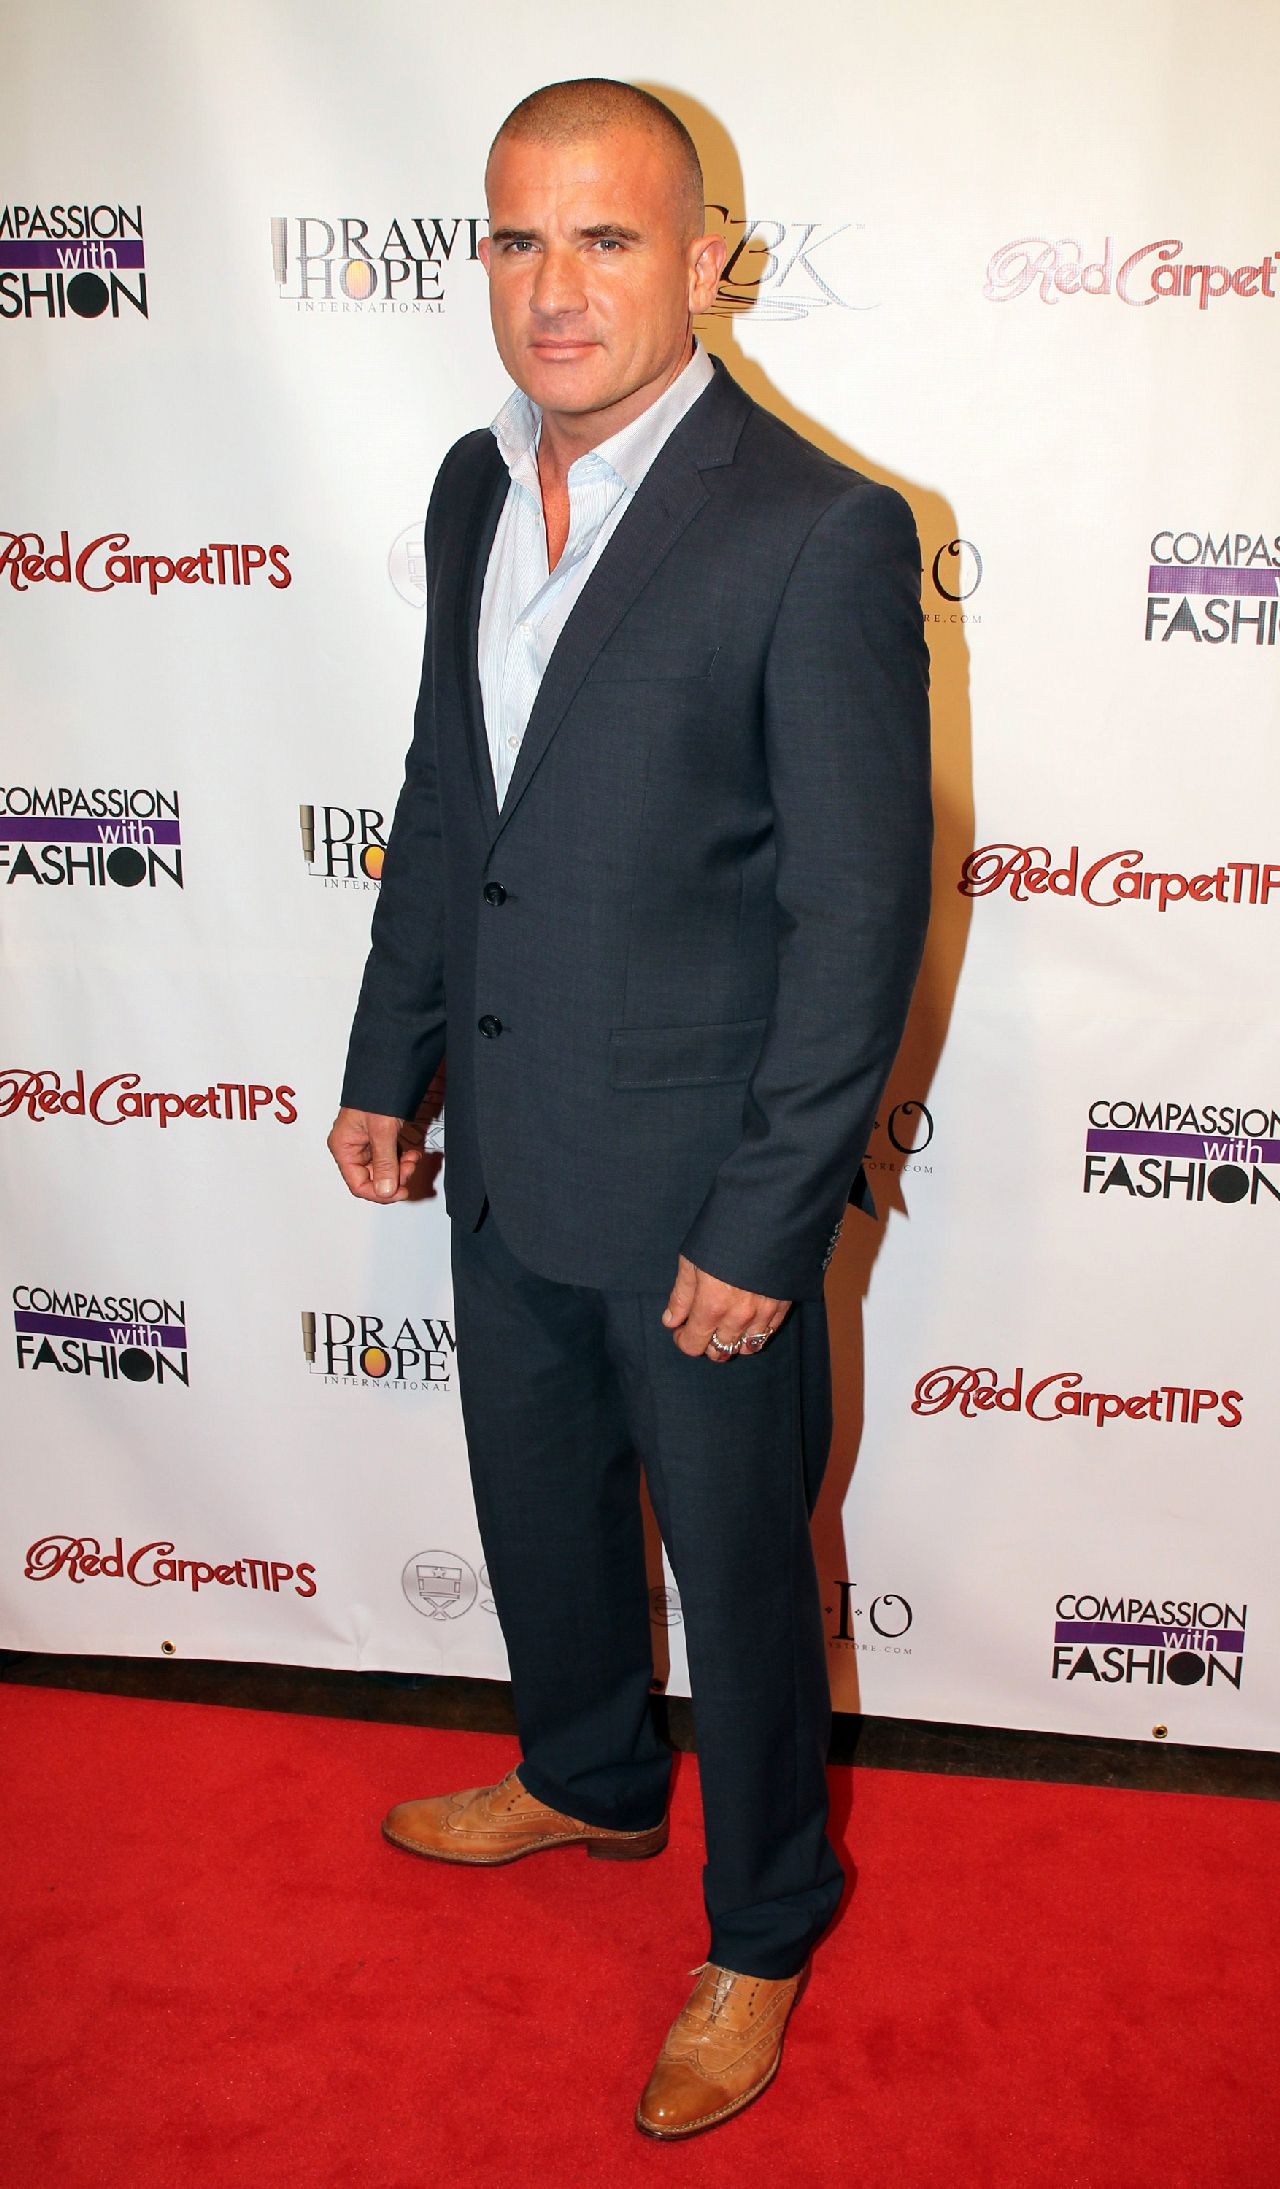 Dominic Purcell (45) - February 17, 1970